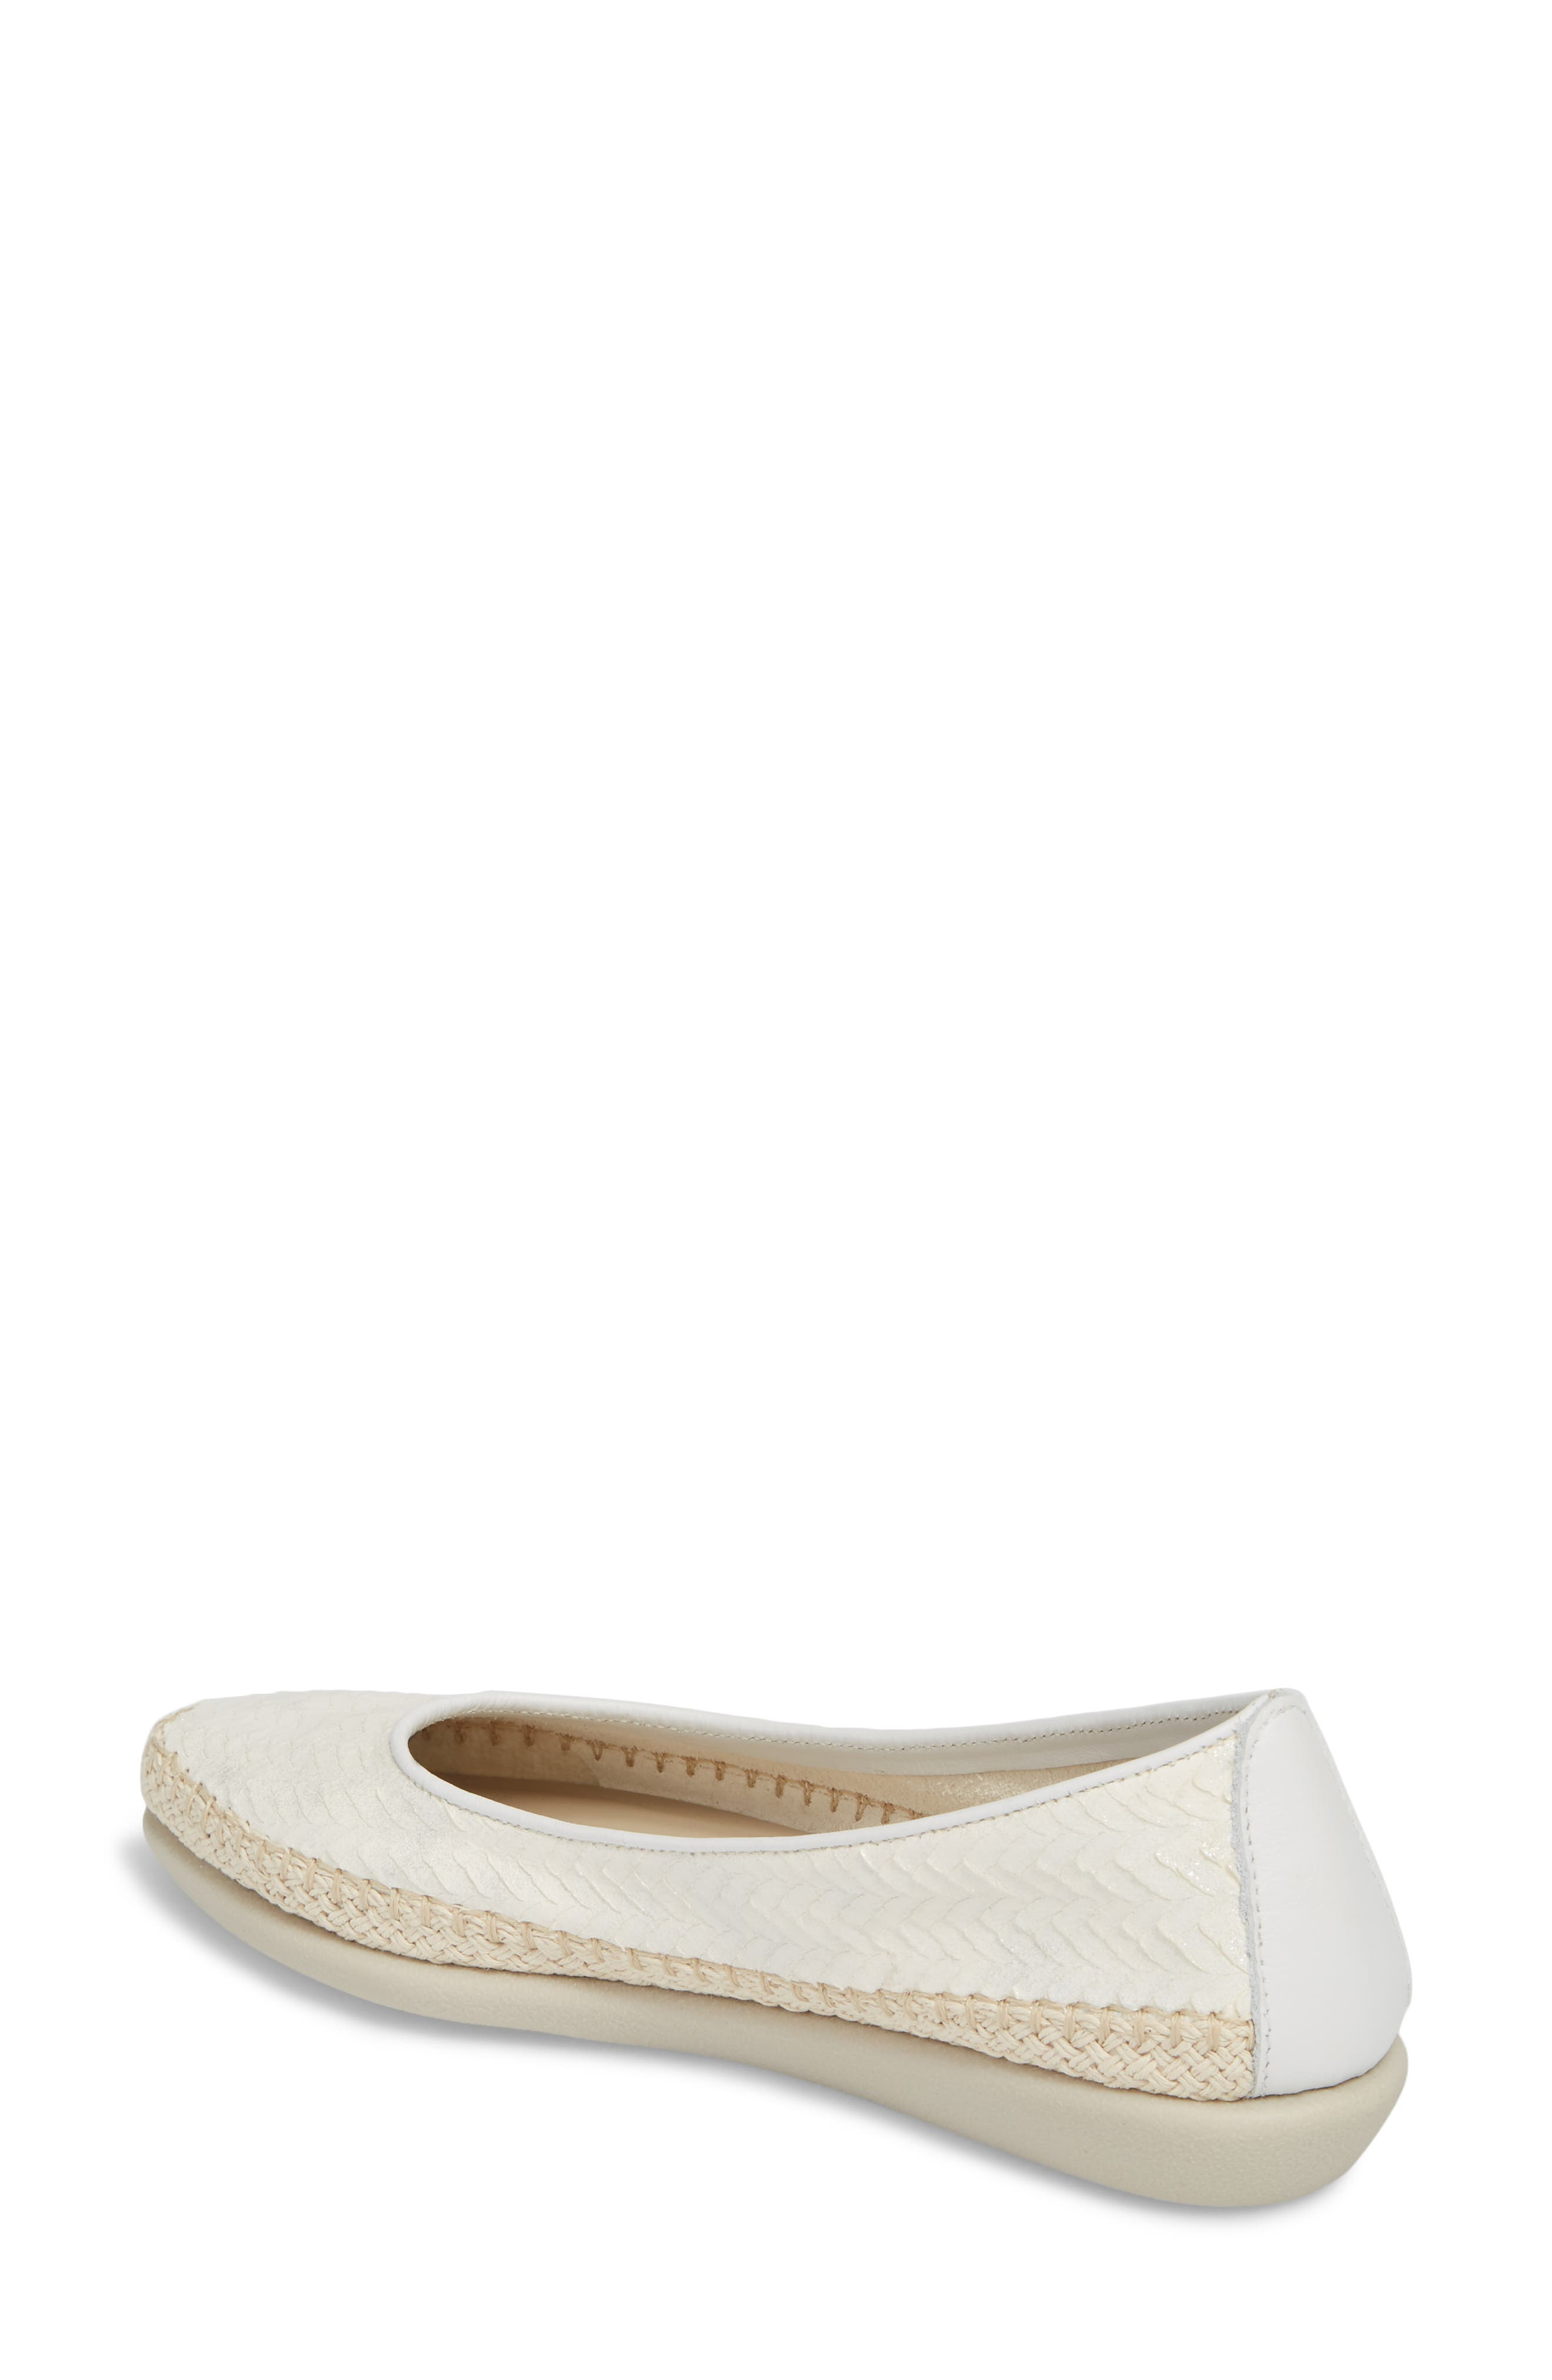 'Torri' Perforated Espadrille Flat,                             Alternate thumbnail 2, color,                             Pearl Leather